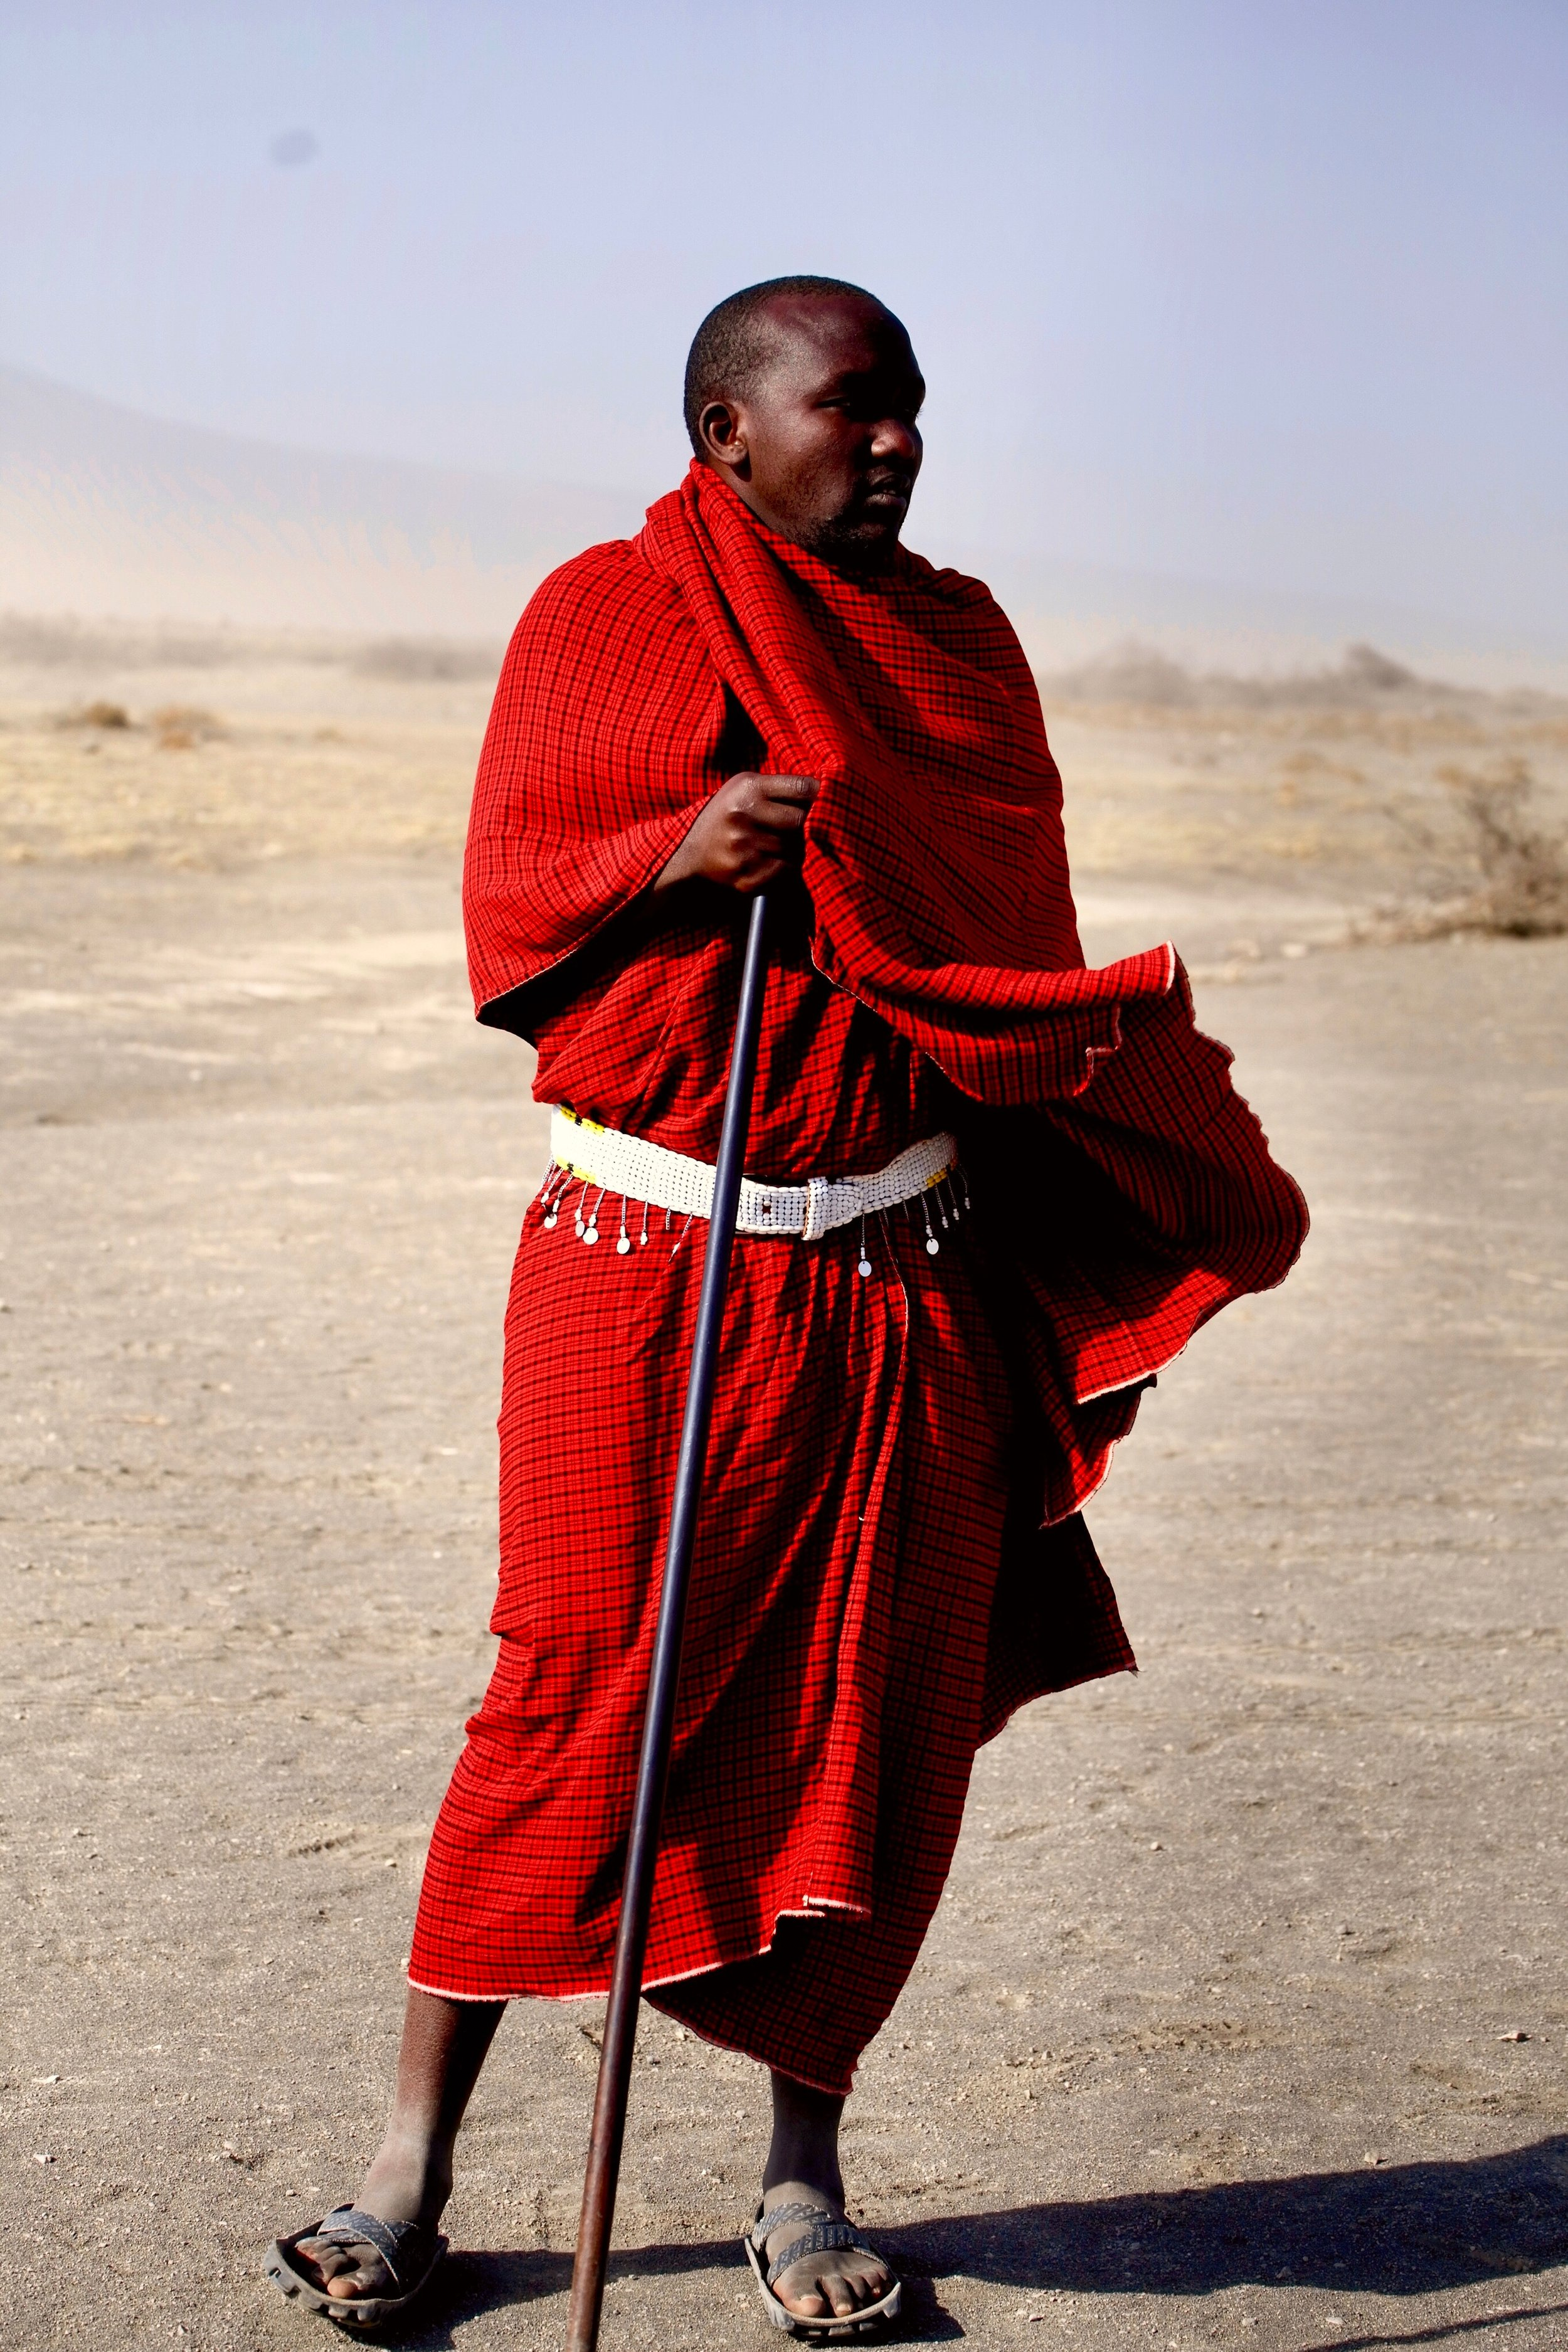 African man wearing red clothing as in robes